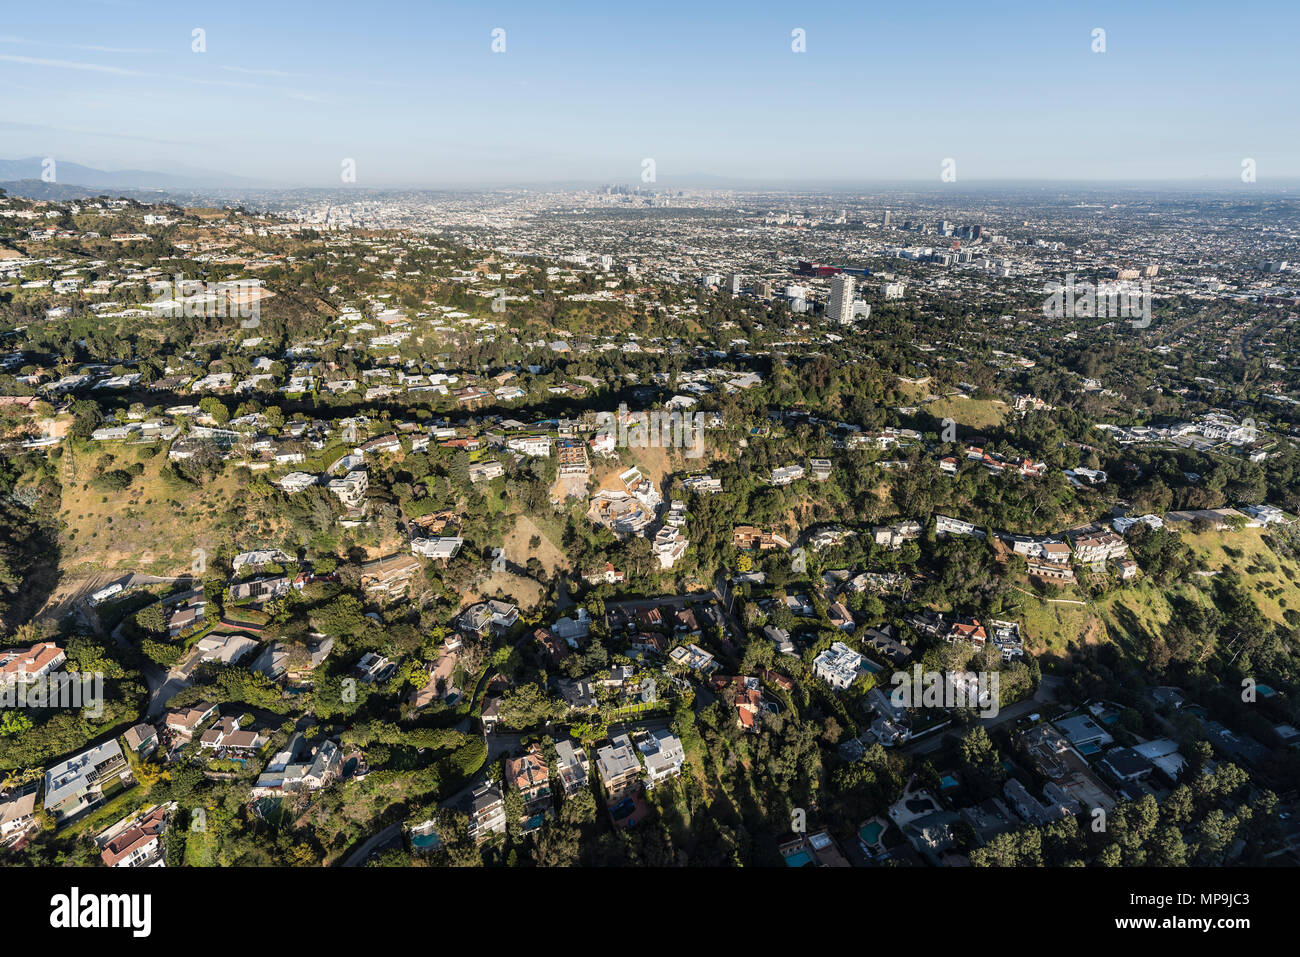 Aerial view of hillside and canyon homes above Beverly Hills